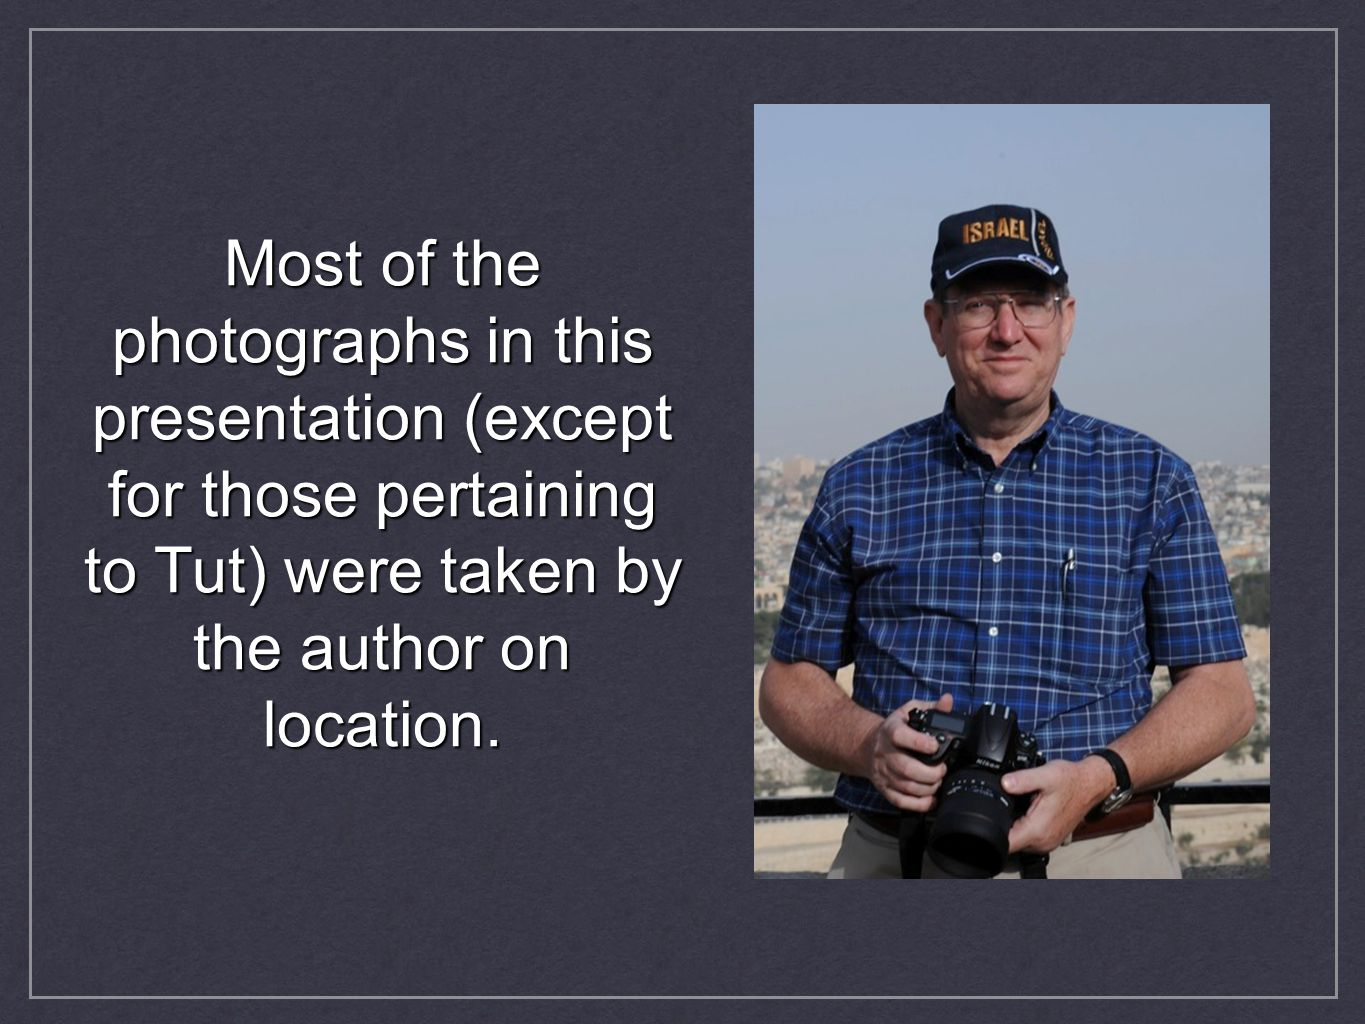 Most of the photographs in this presentation (except for those pertaining to Tut) were taken by the author on location.